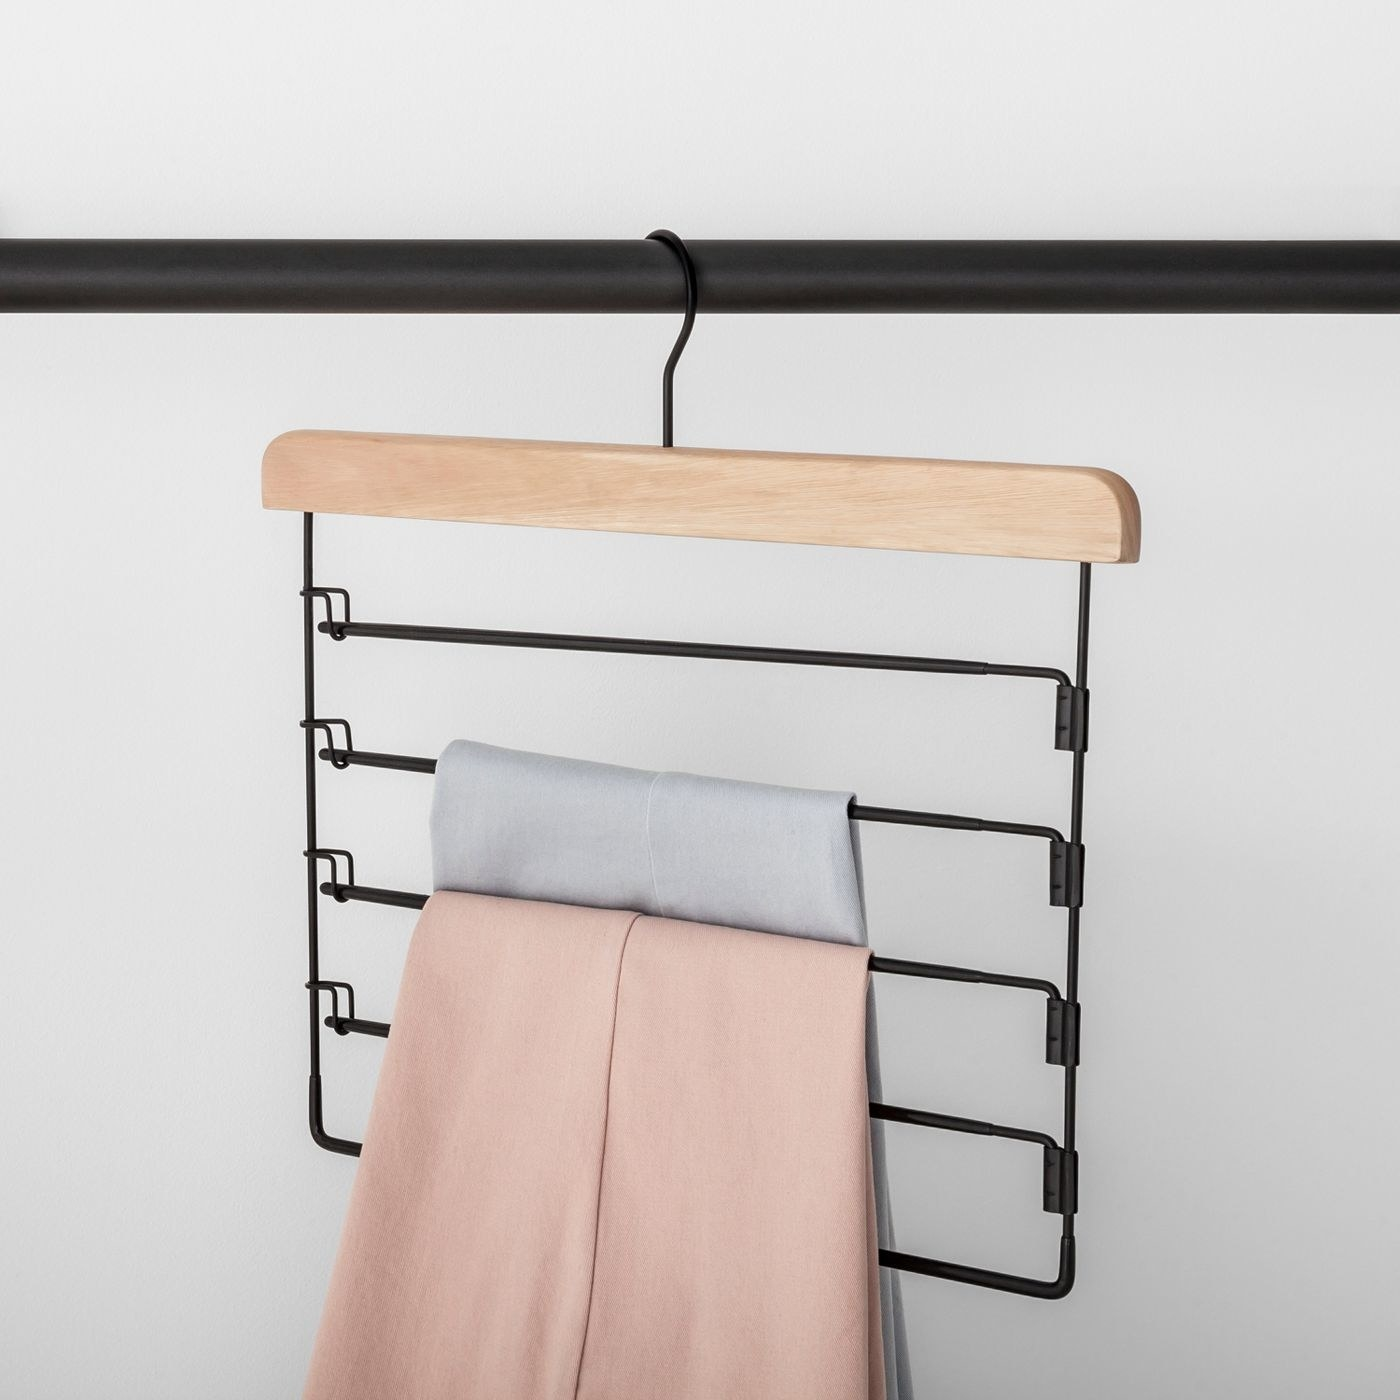 A pants hanger with two pairs of pants on it